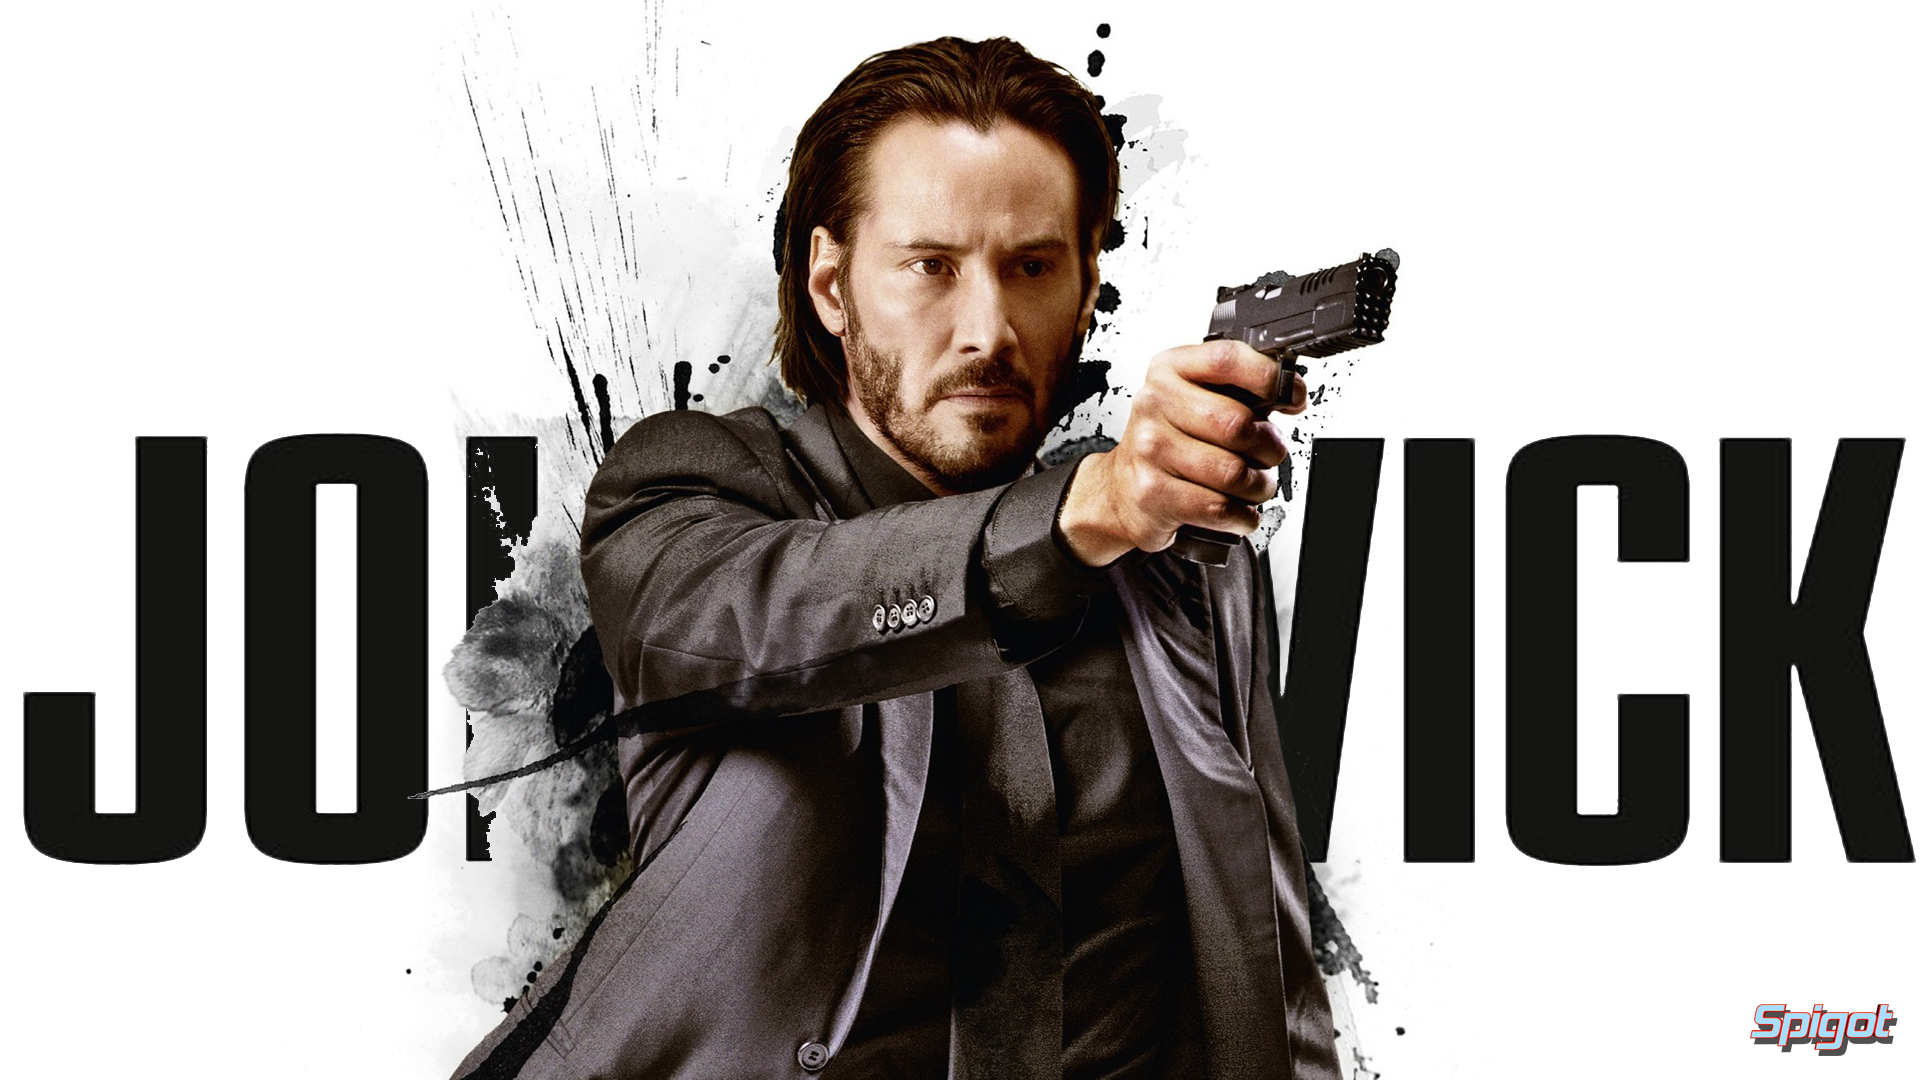 John Wick Wallpapers High Resolution And Quality Download